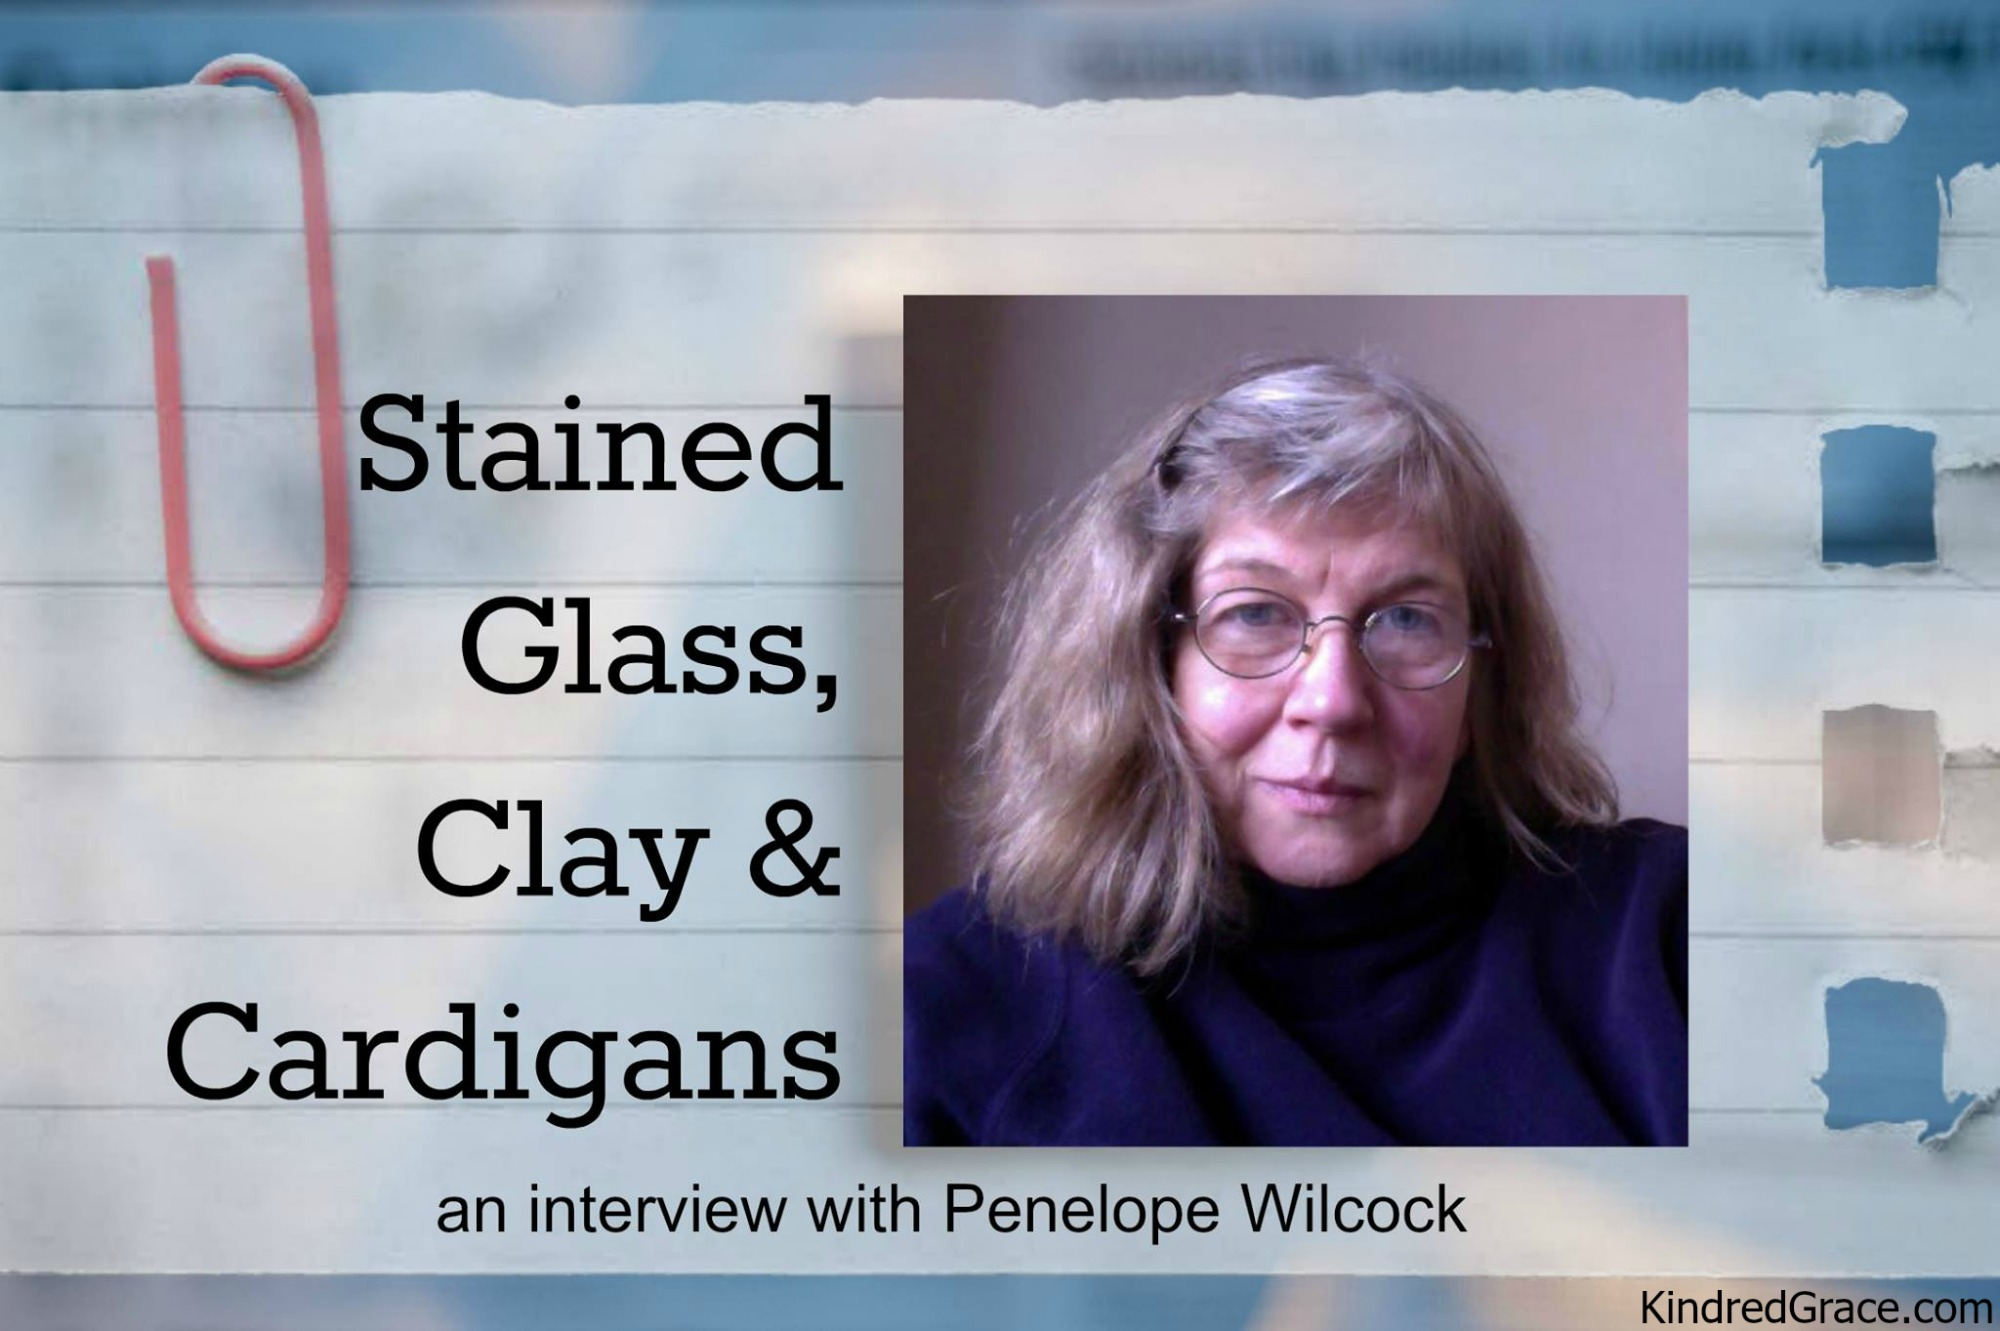 Of Stained Glass, Clay and Cardigans: An Interview with Penelope Wilcock